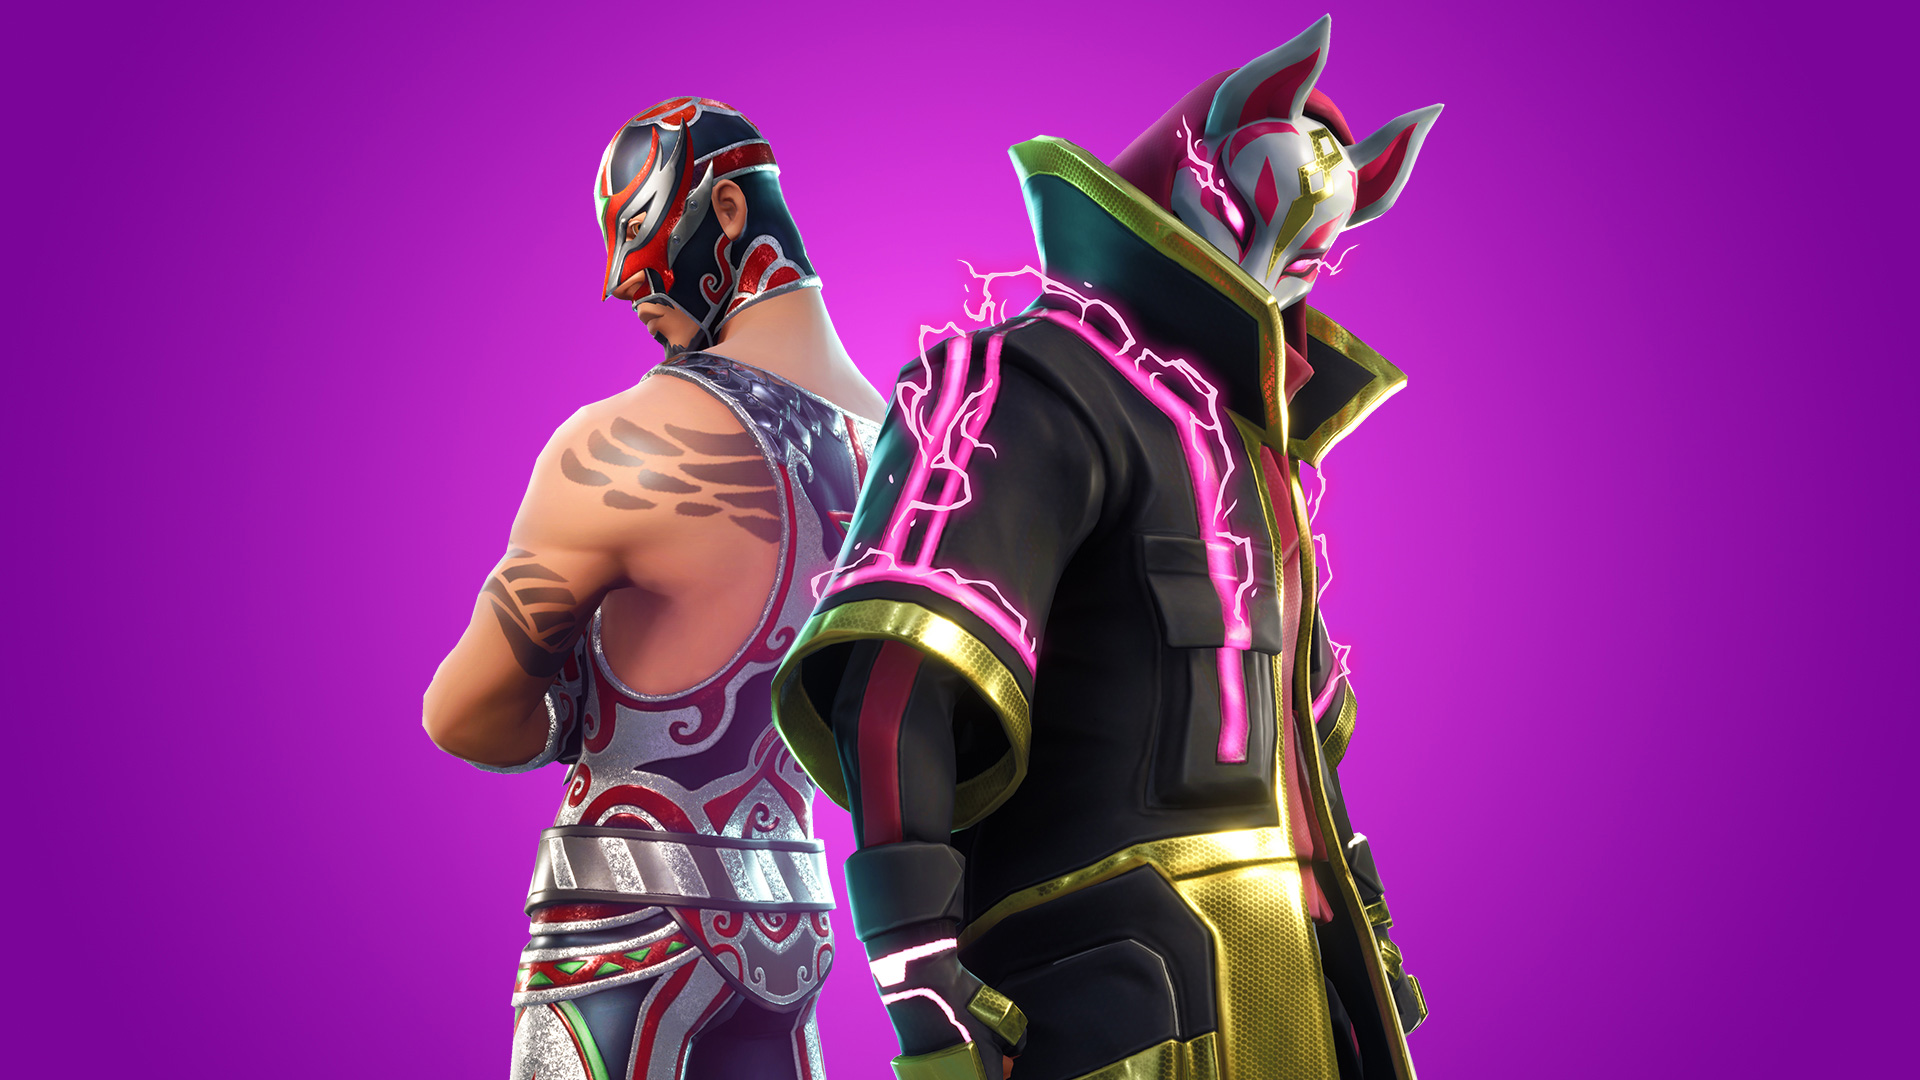 Fortnite Masked Fury Skin - Outfit, Pngs, Images - Pro -5254